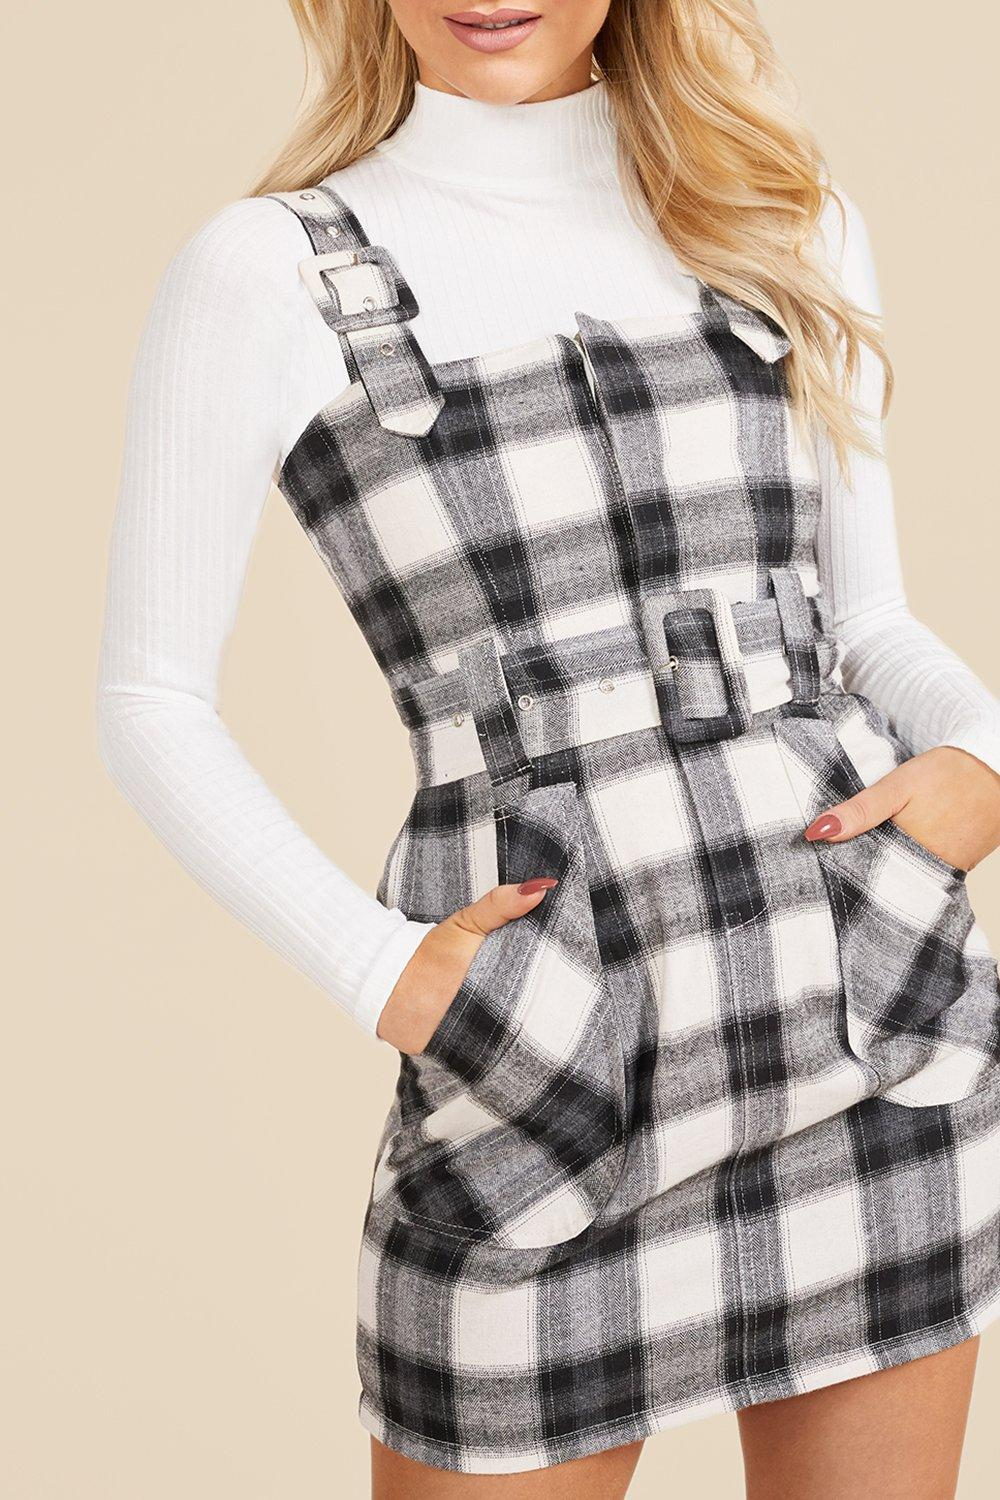 90s Clothing Outfits You Can Buy Now Womens Flanneled Buckle Detail Pinafore Dress - Black - 12 $14.40 AT vintagedancer.com